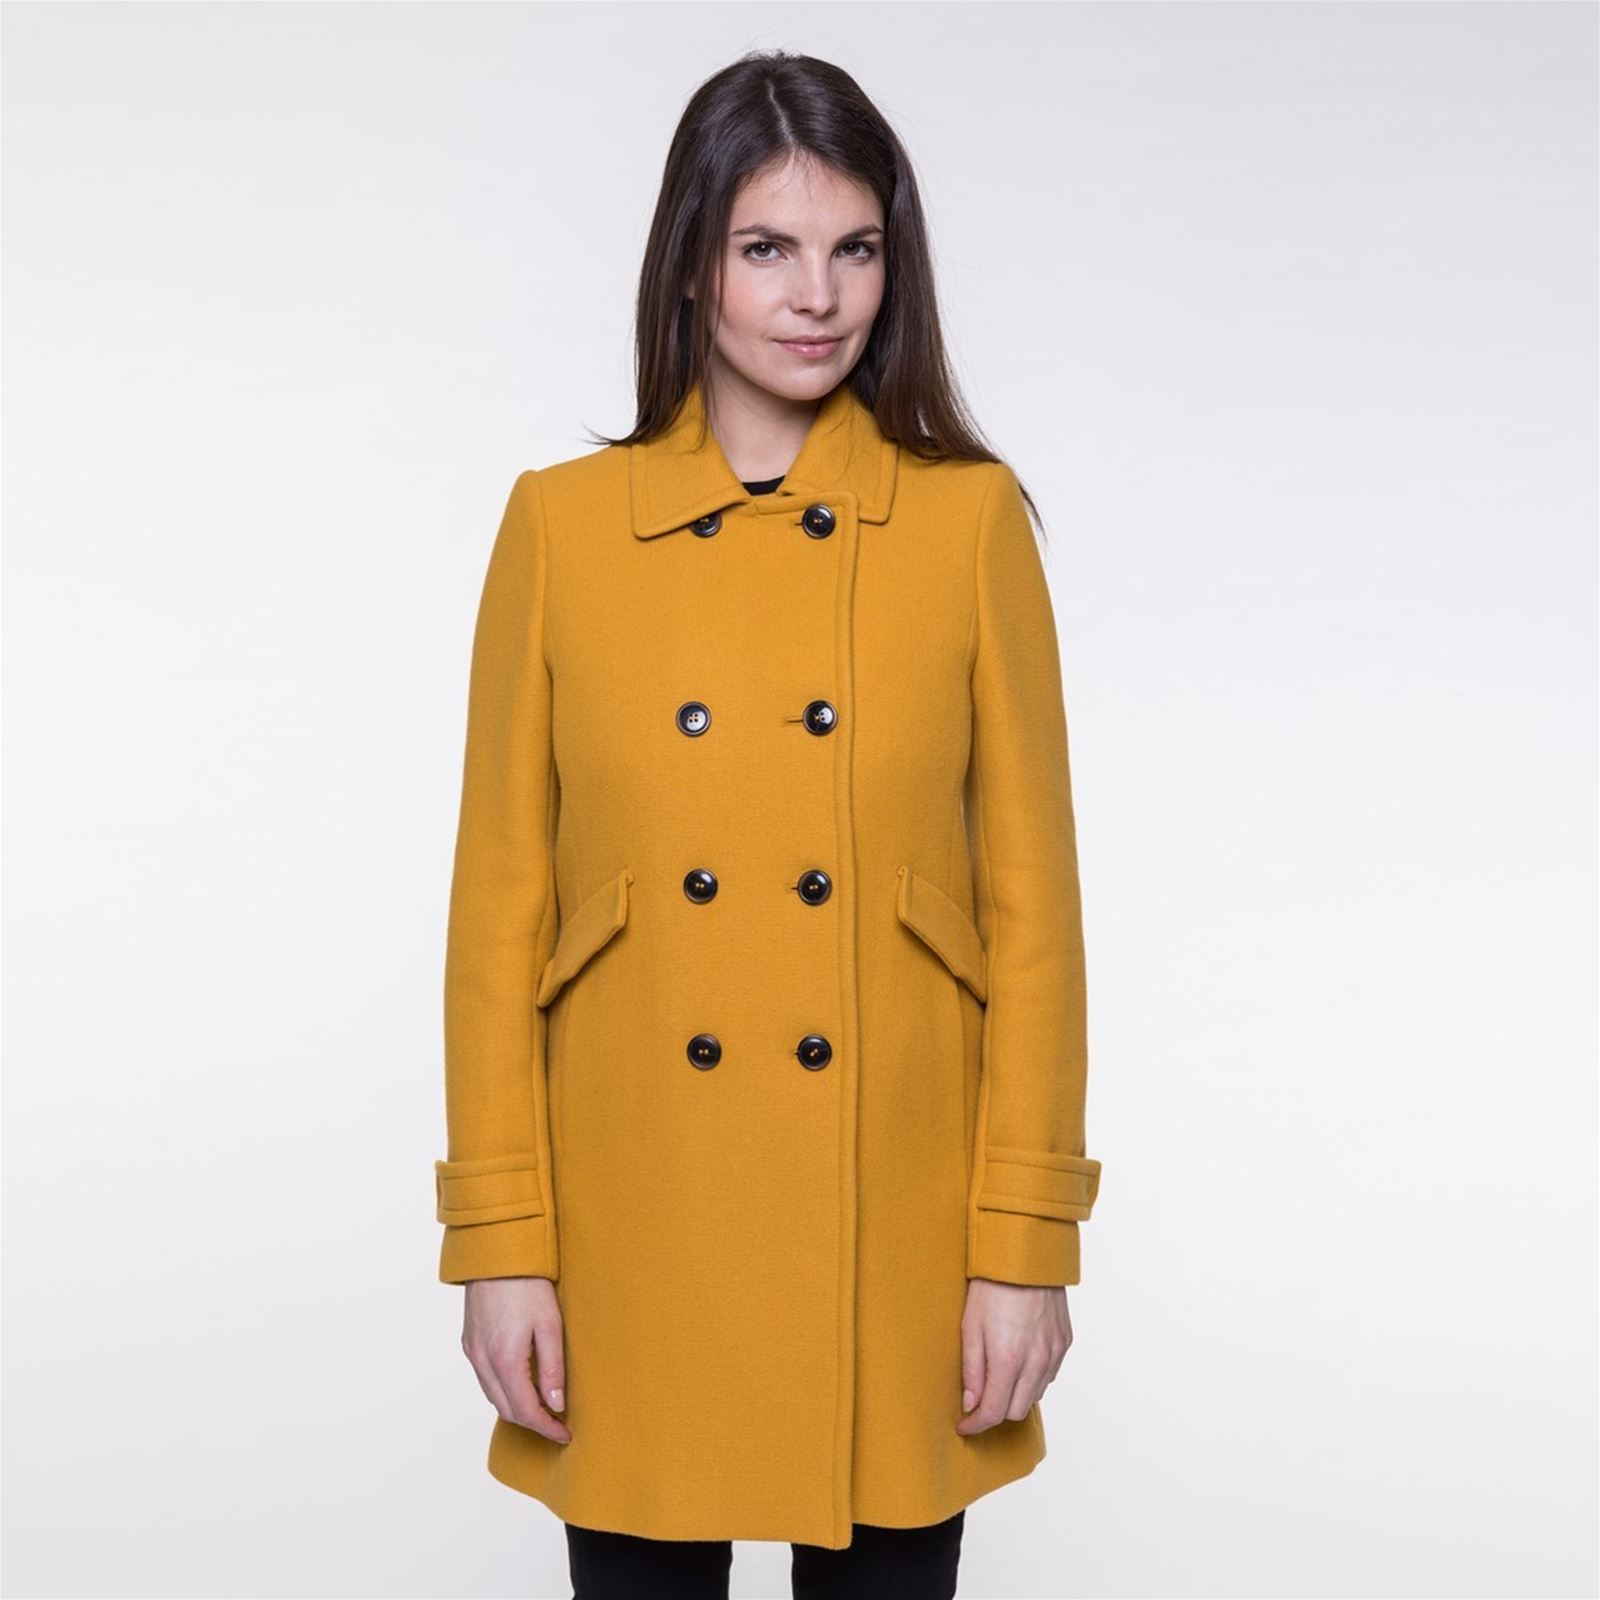 coat laine Trench en jaune Manteau mélangée BrandAlley and Tqwwva5A 48fef2d4fd8a